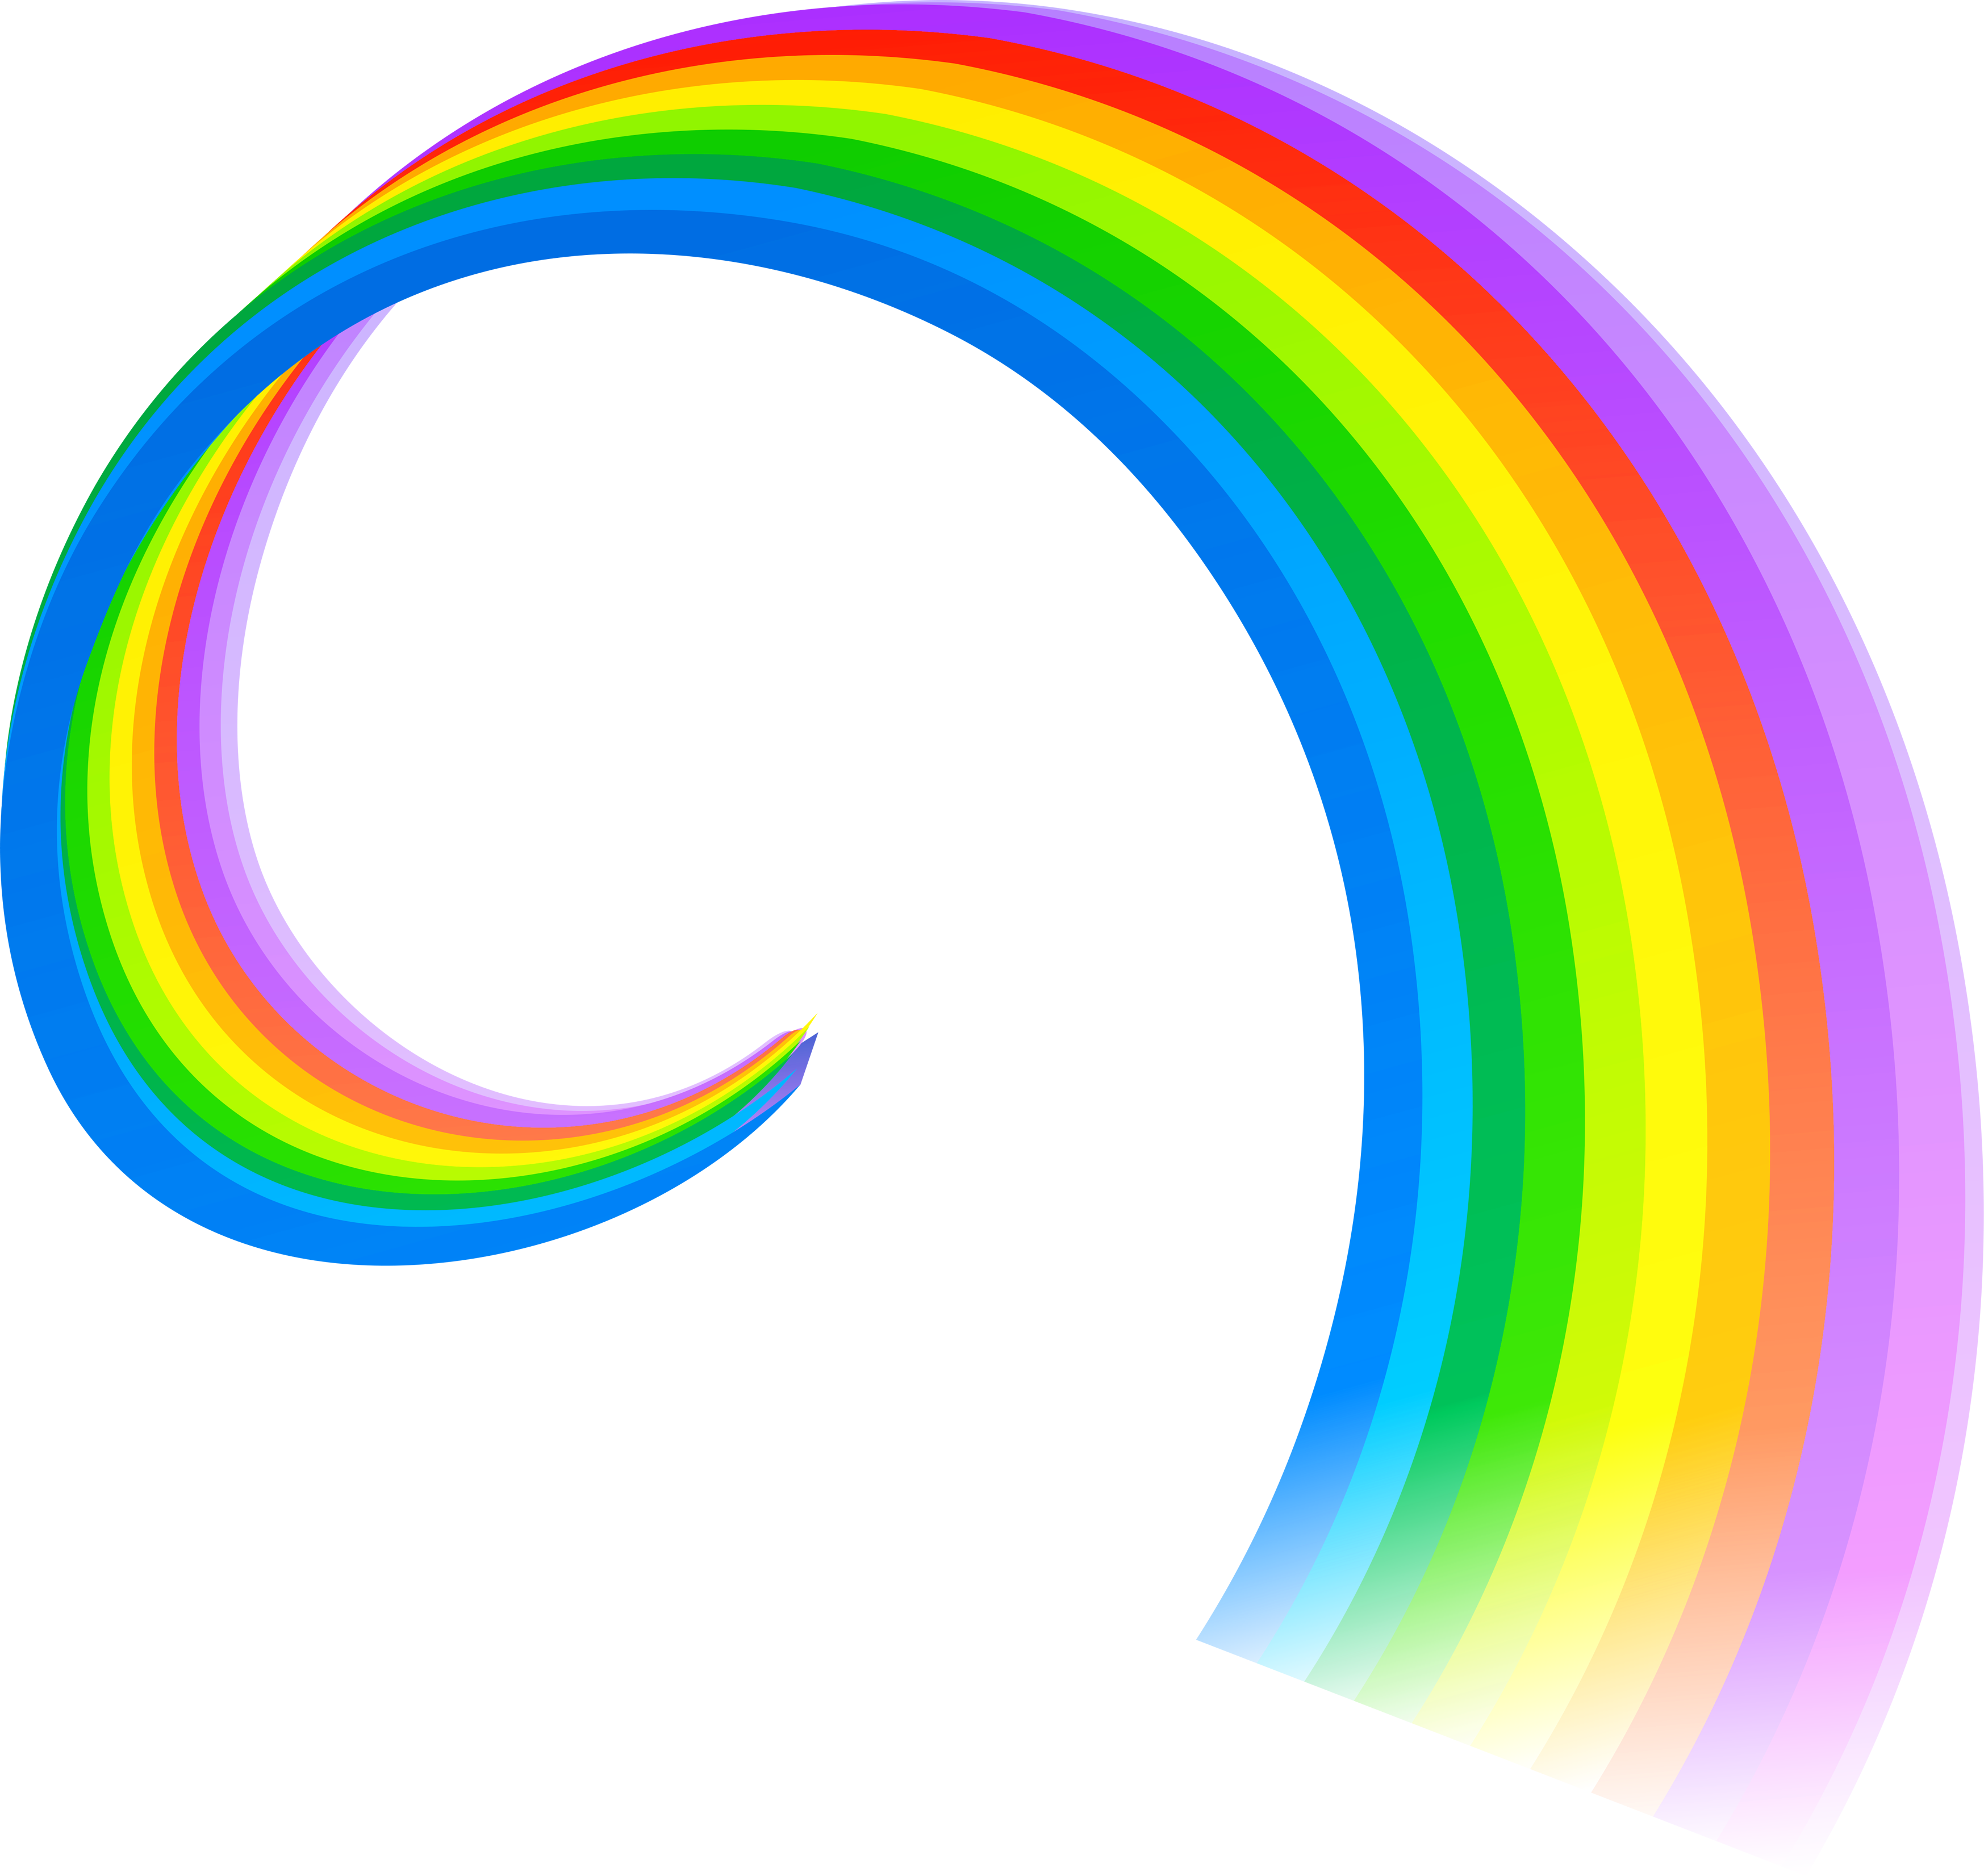 Cute Rainbow Png image #7013